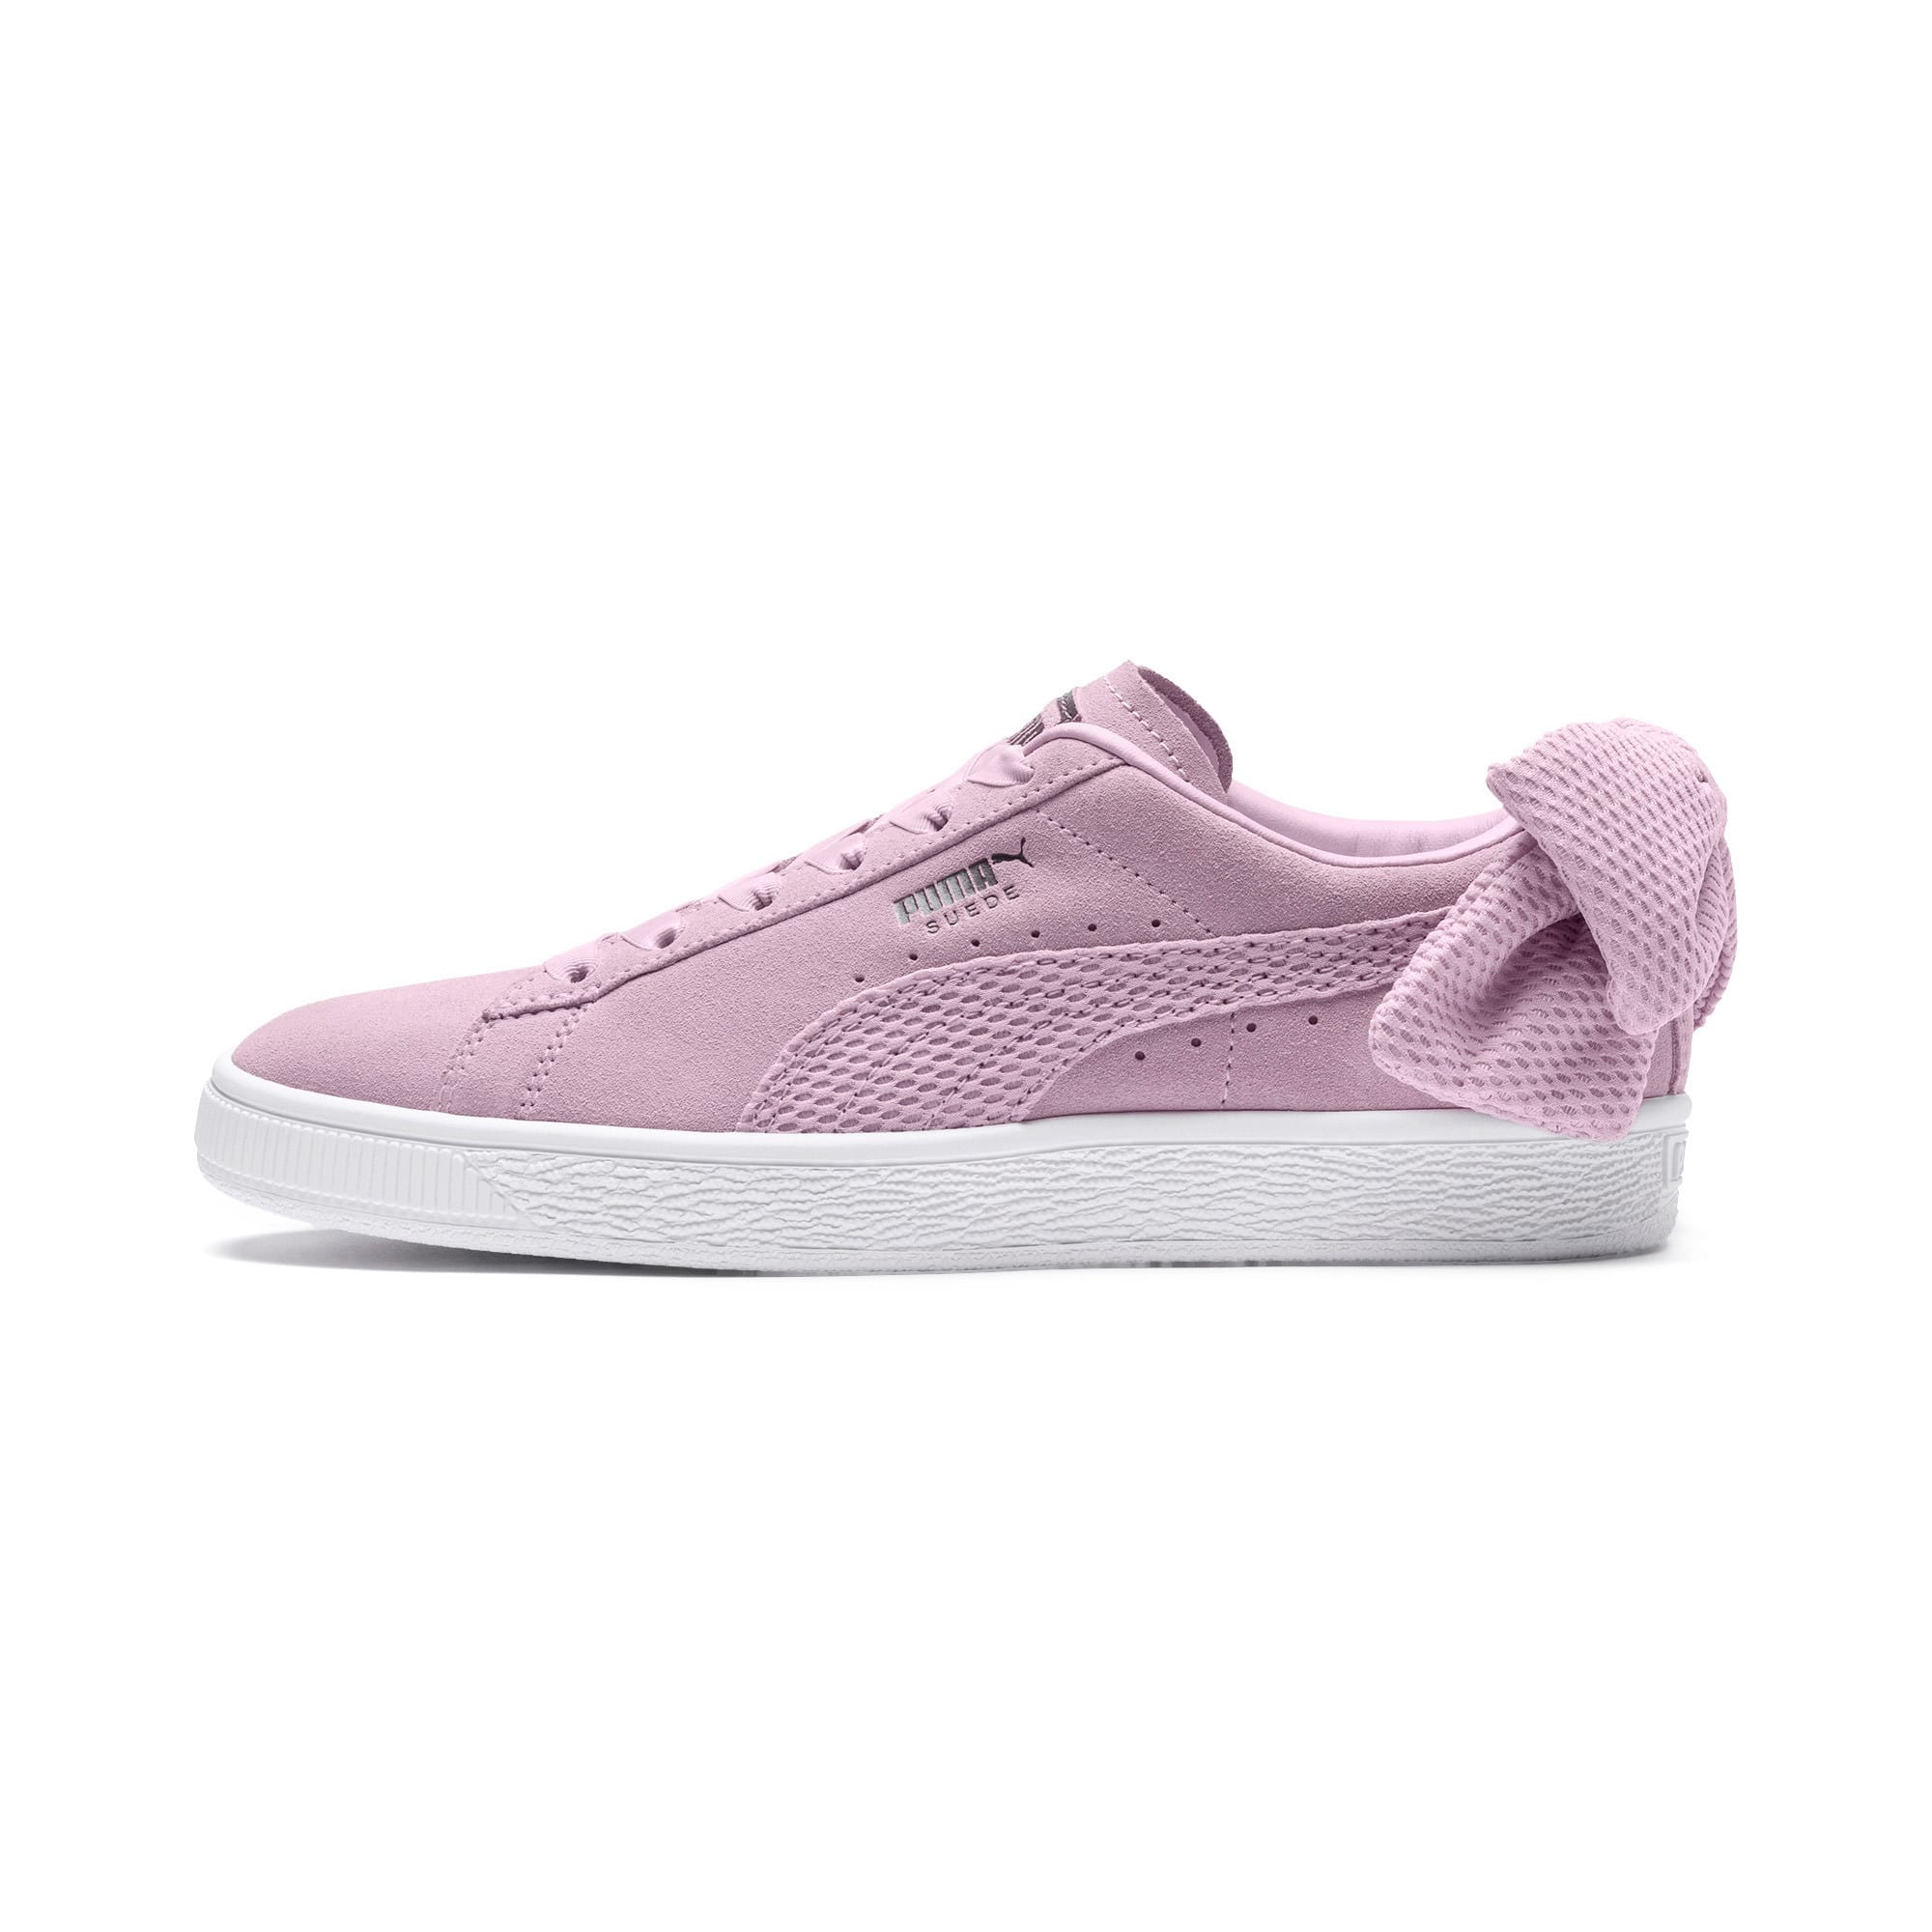 many styles fresh styles united kingdom Suede Bow Uprising Women's Sneakers